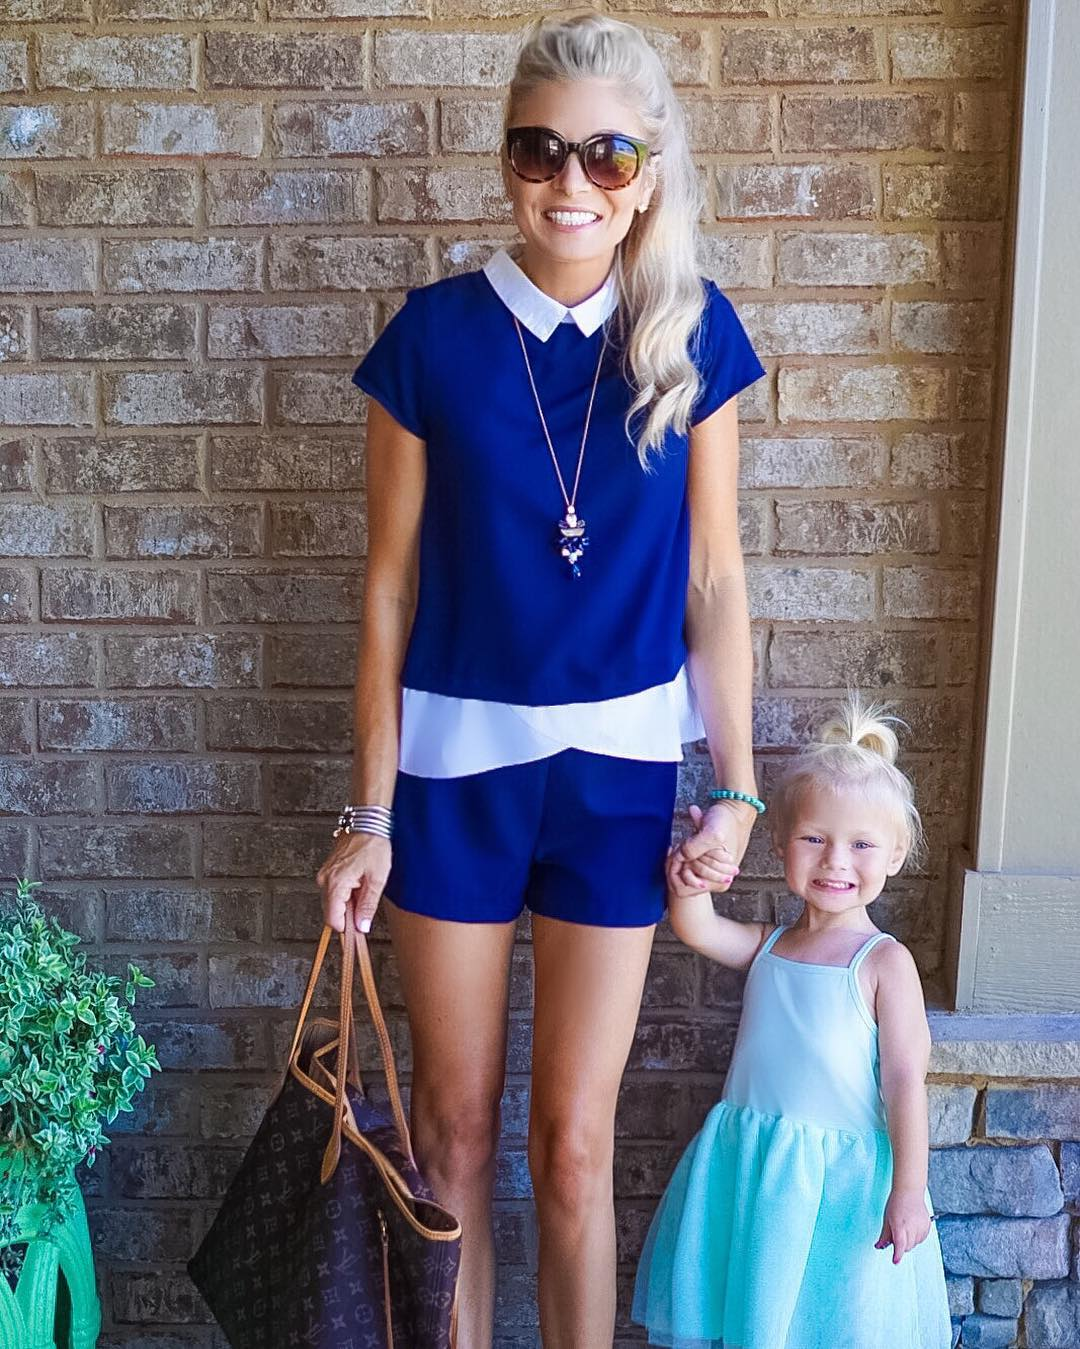 "I asked Bailey what she wanted to do today...and she said ""go shopping"" soooo shopping it is! #daydate #lifewithblove #summer http://liketk.it/2oLR3"